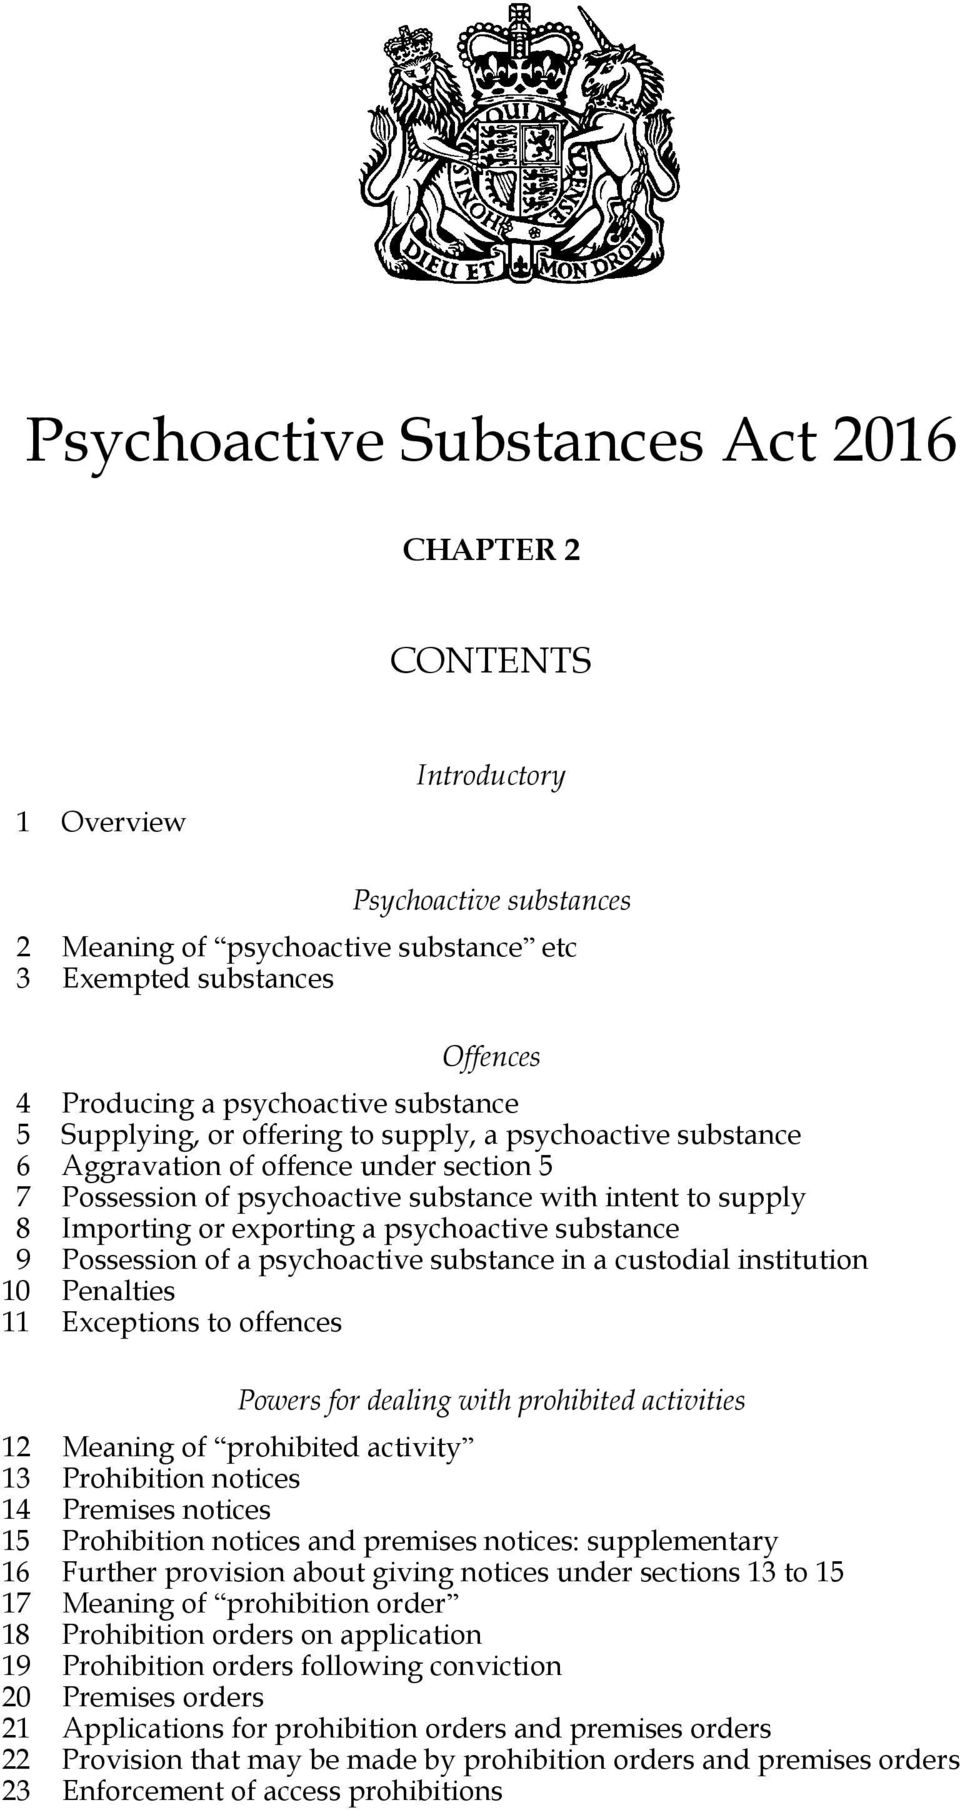 psychoactive substance 9 Possession of a psychoactive substance in a custodial institution 10 Penalties 11 Exceptions to offences Powers for dealing with prohibited activities 12 Meaning of